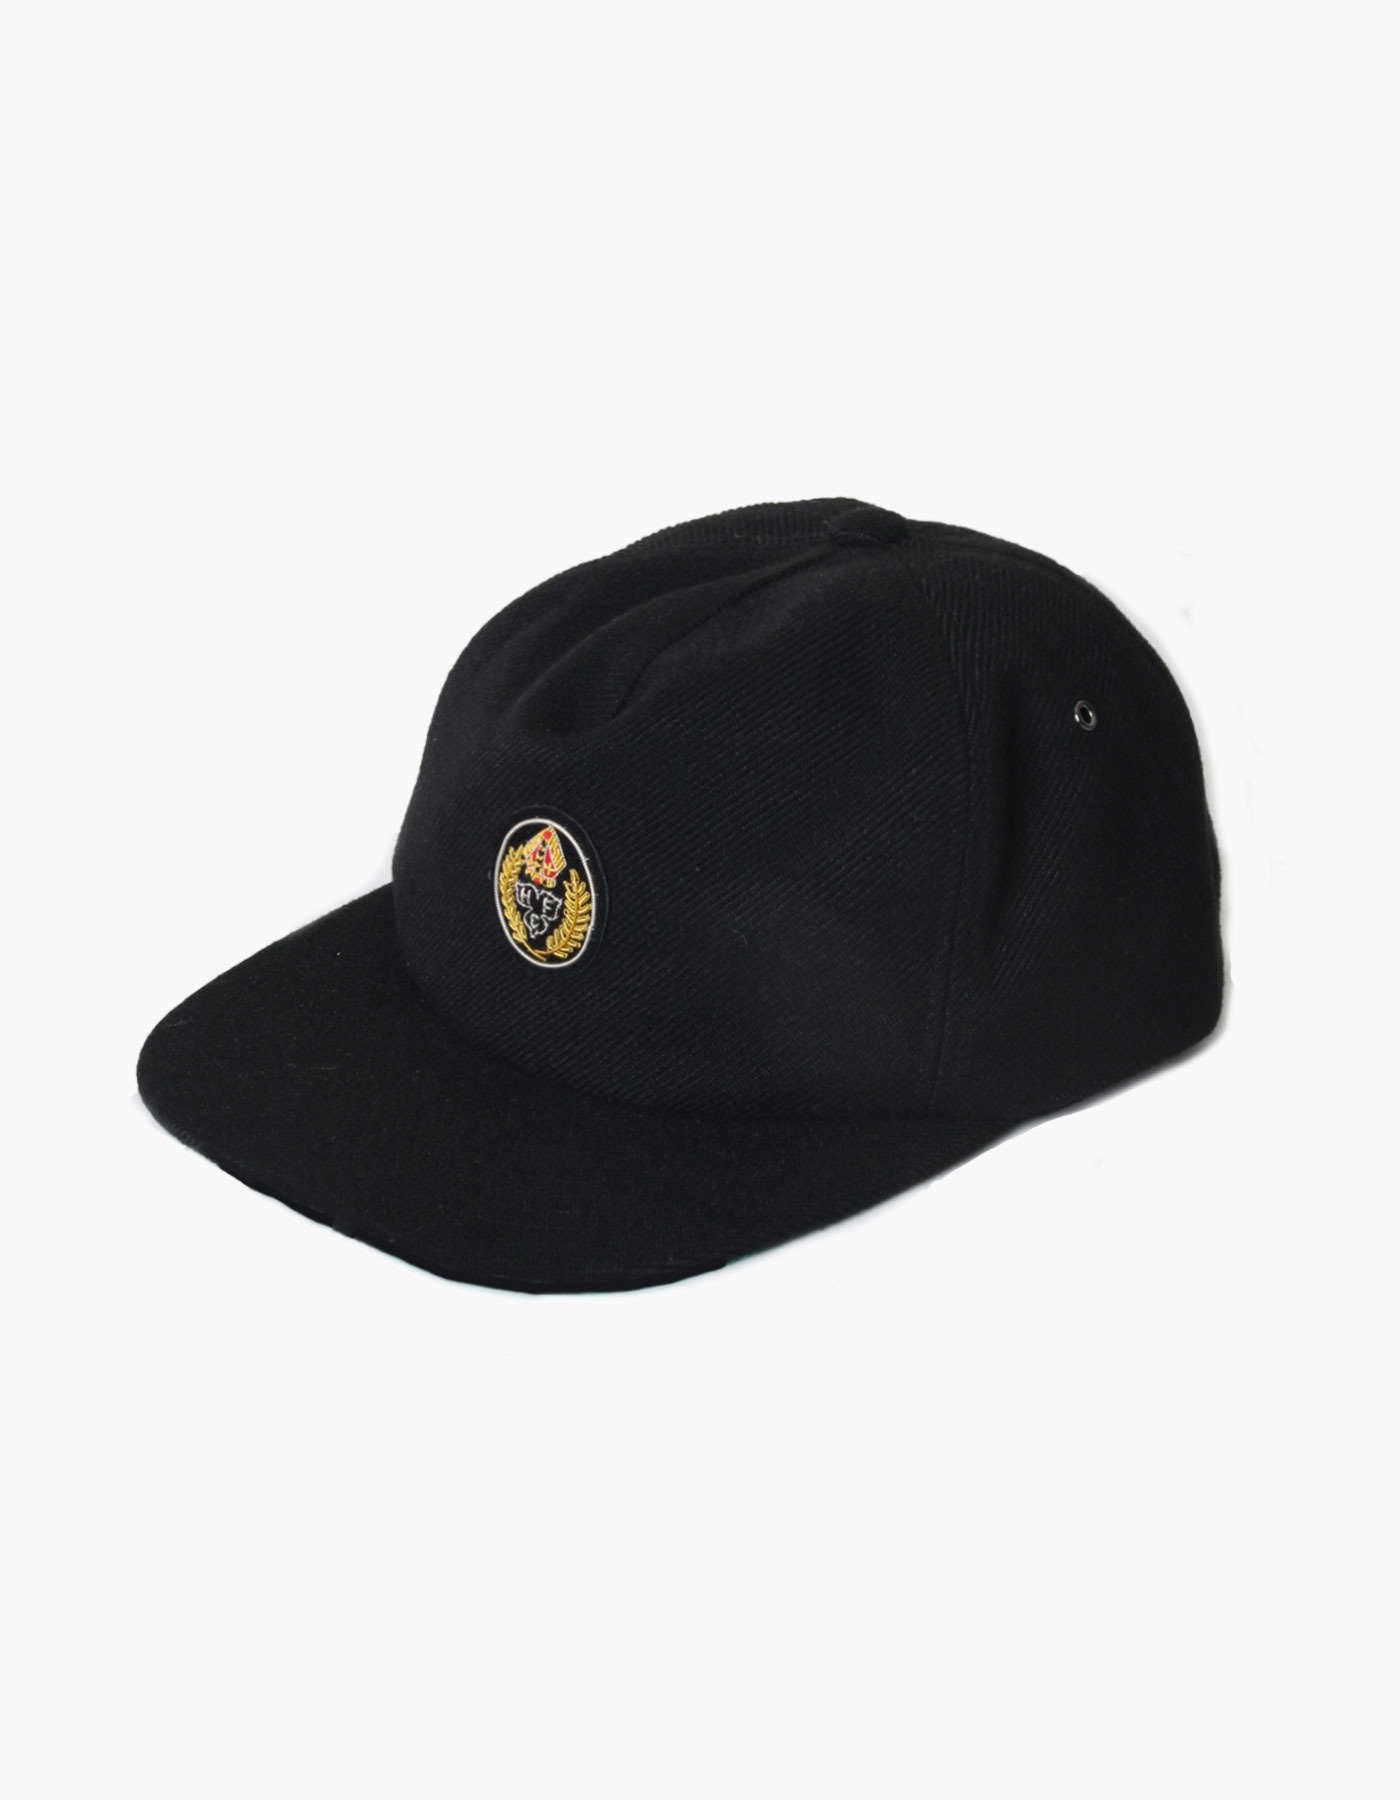 HFC CREST FAUX WOOL CAP / BLACK